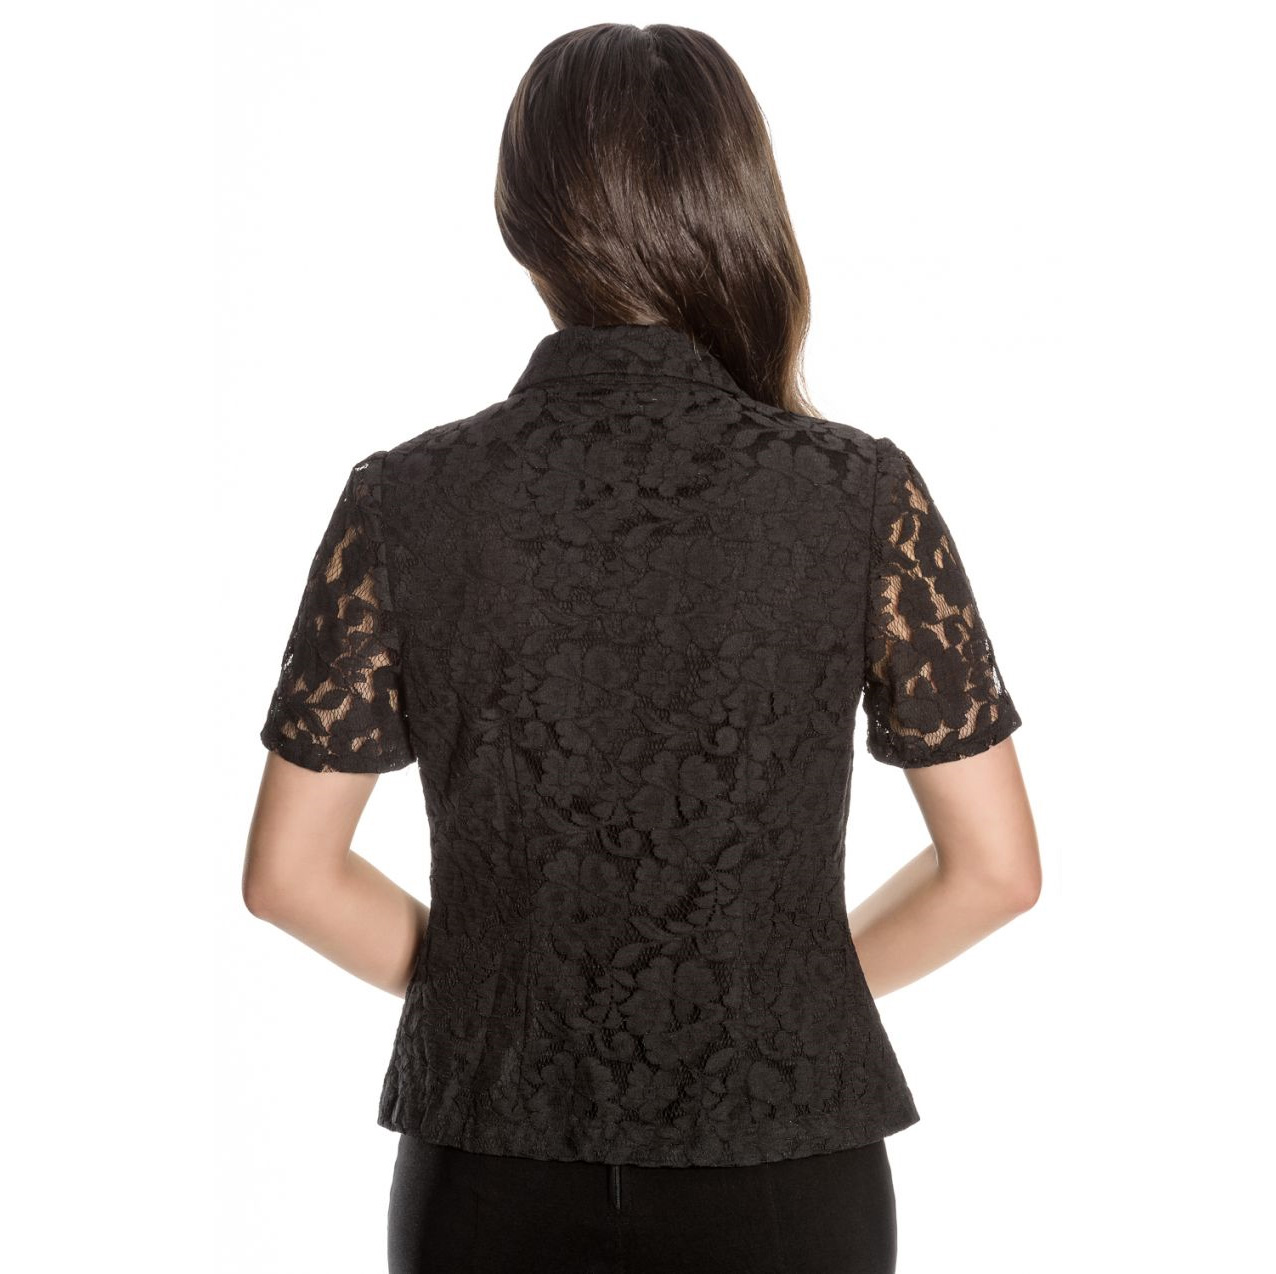 Hell-Bunny-Spin-Doctor-Vampire-Gothic-Shirt-Top-ROWENA-Lace-Blouse-All-Sizes Indexbild 5